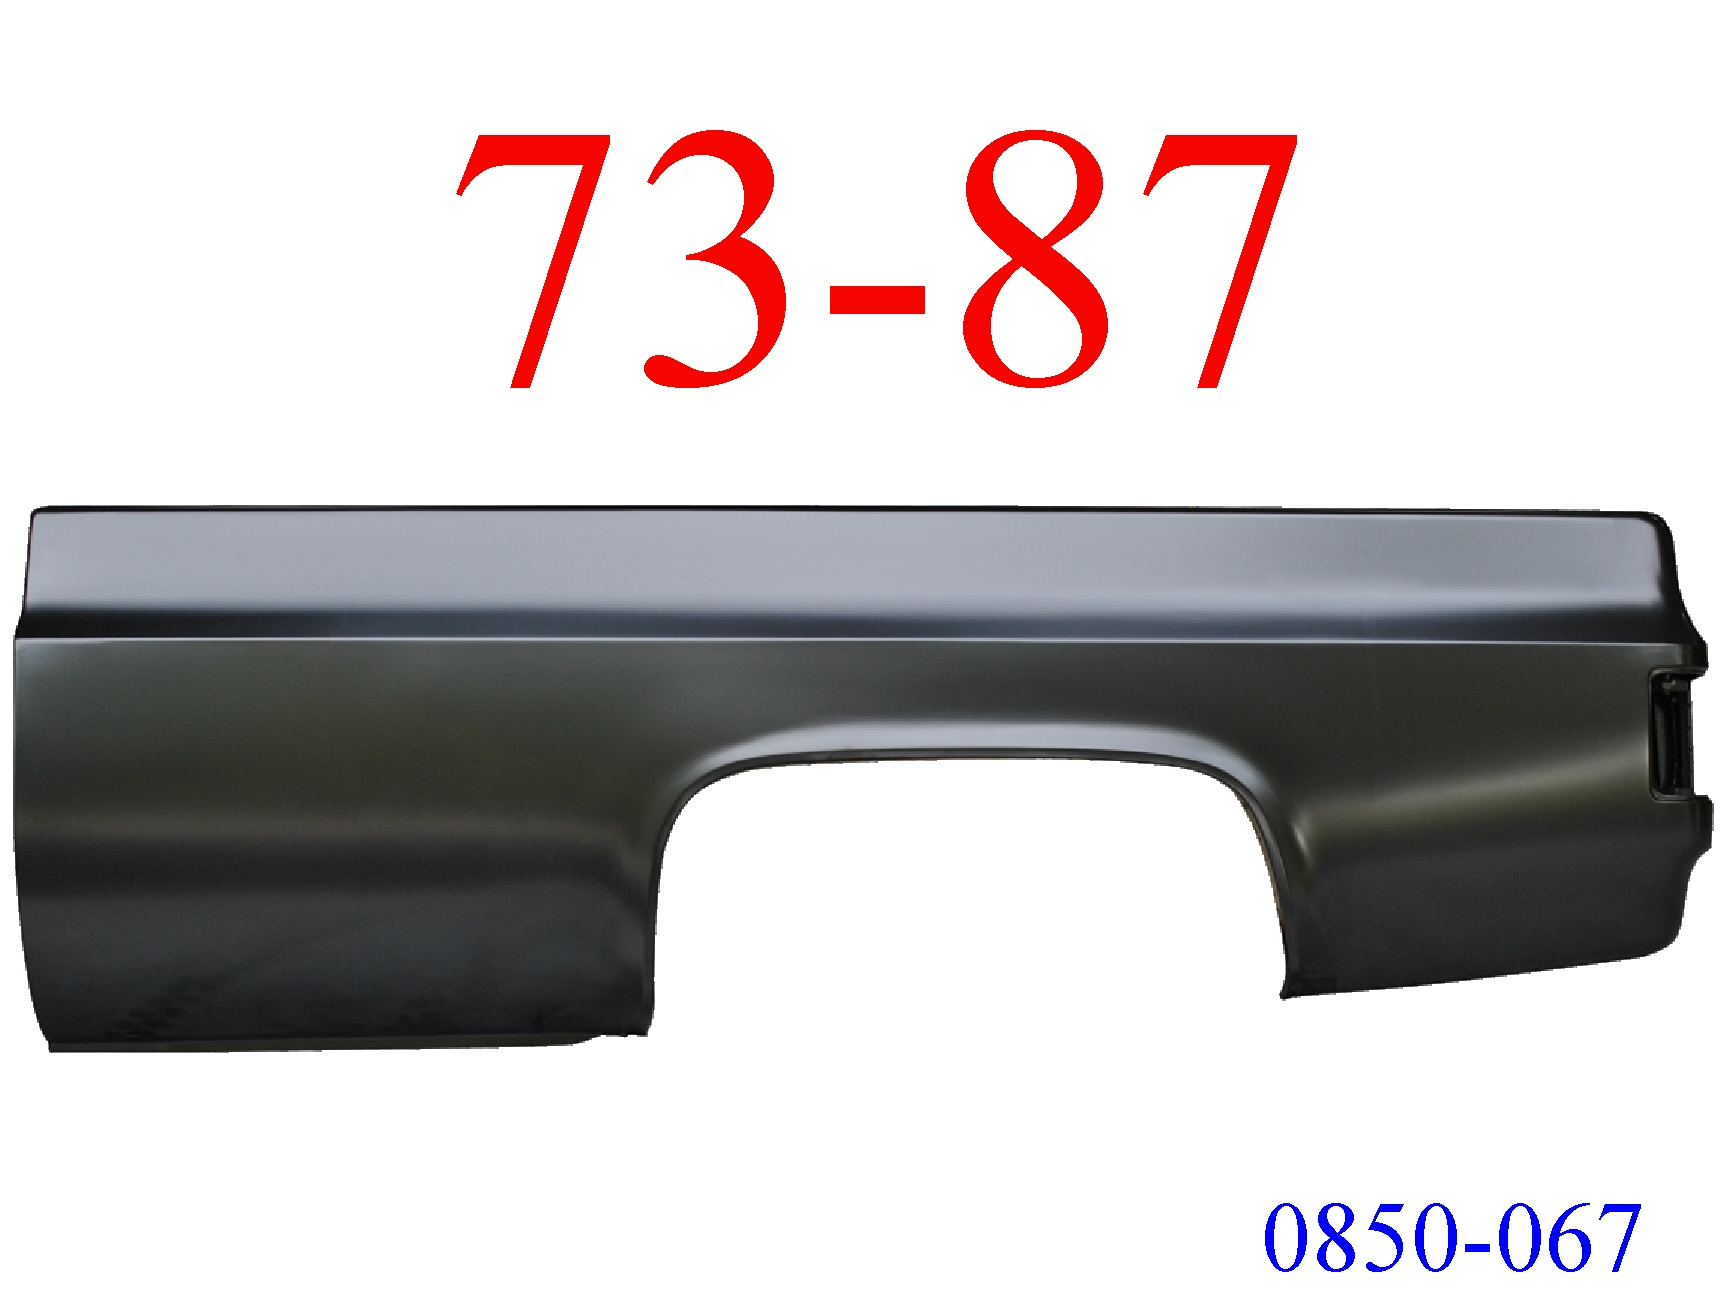 73-87 Chevy Truck 8\' Left Bed Side No Fuel Hole 0850-067